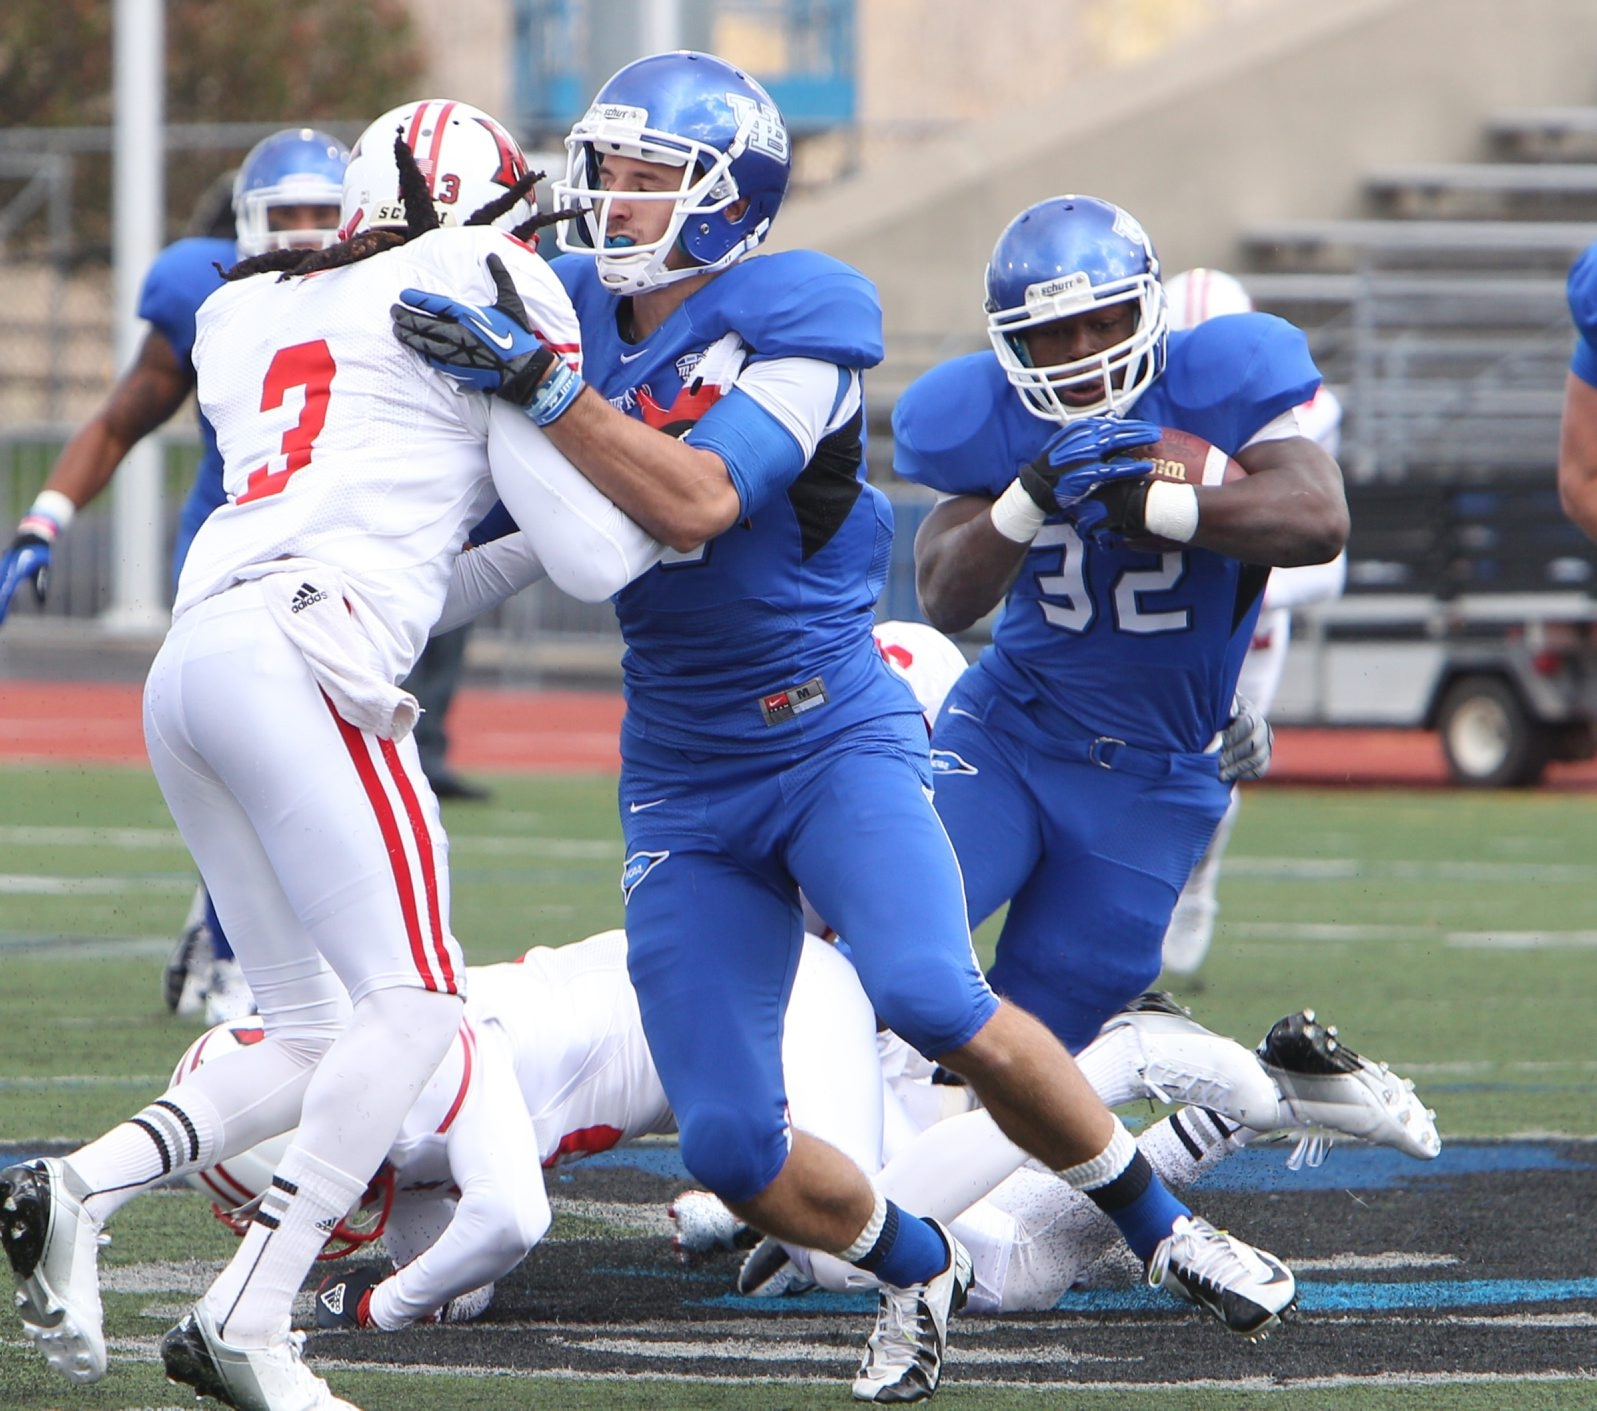 UB wide receiver Alex Neutz gives Branden Oliver (32) some running room as he blocks Miami's Dayonne Nunley (3) in the first half of the Bulls' victory.